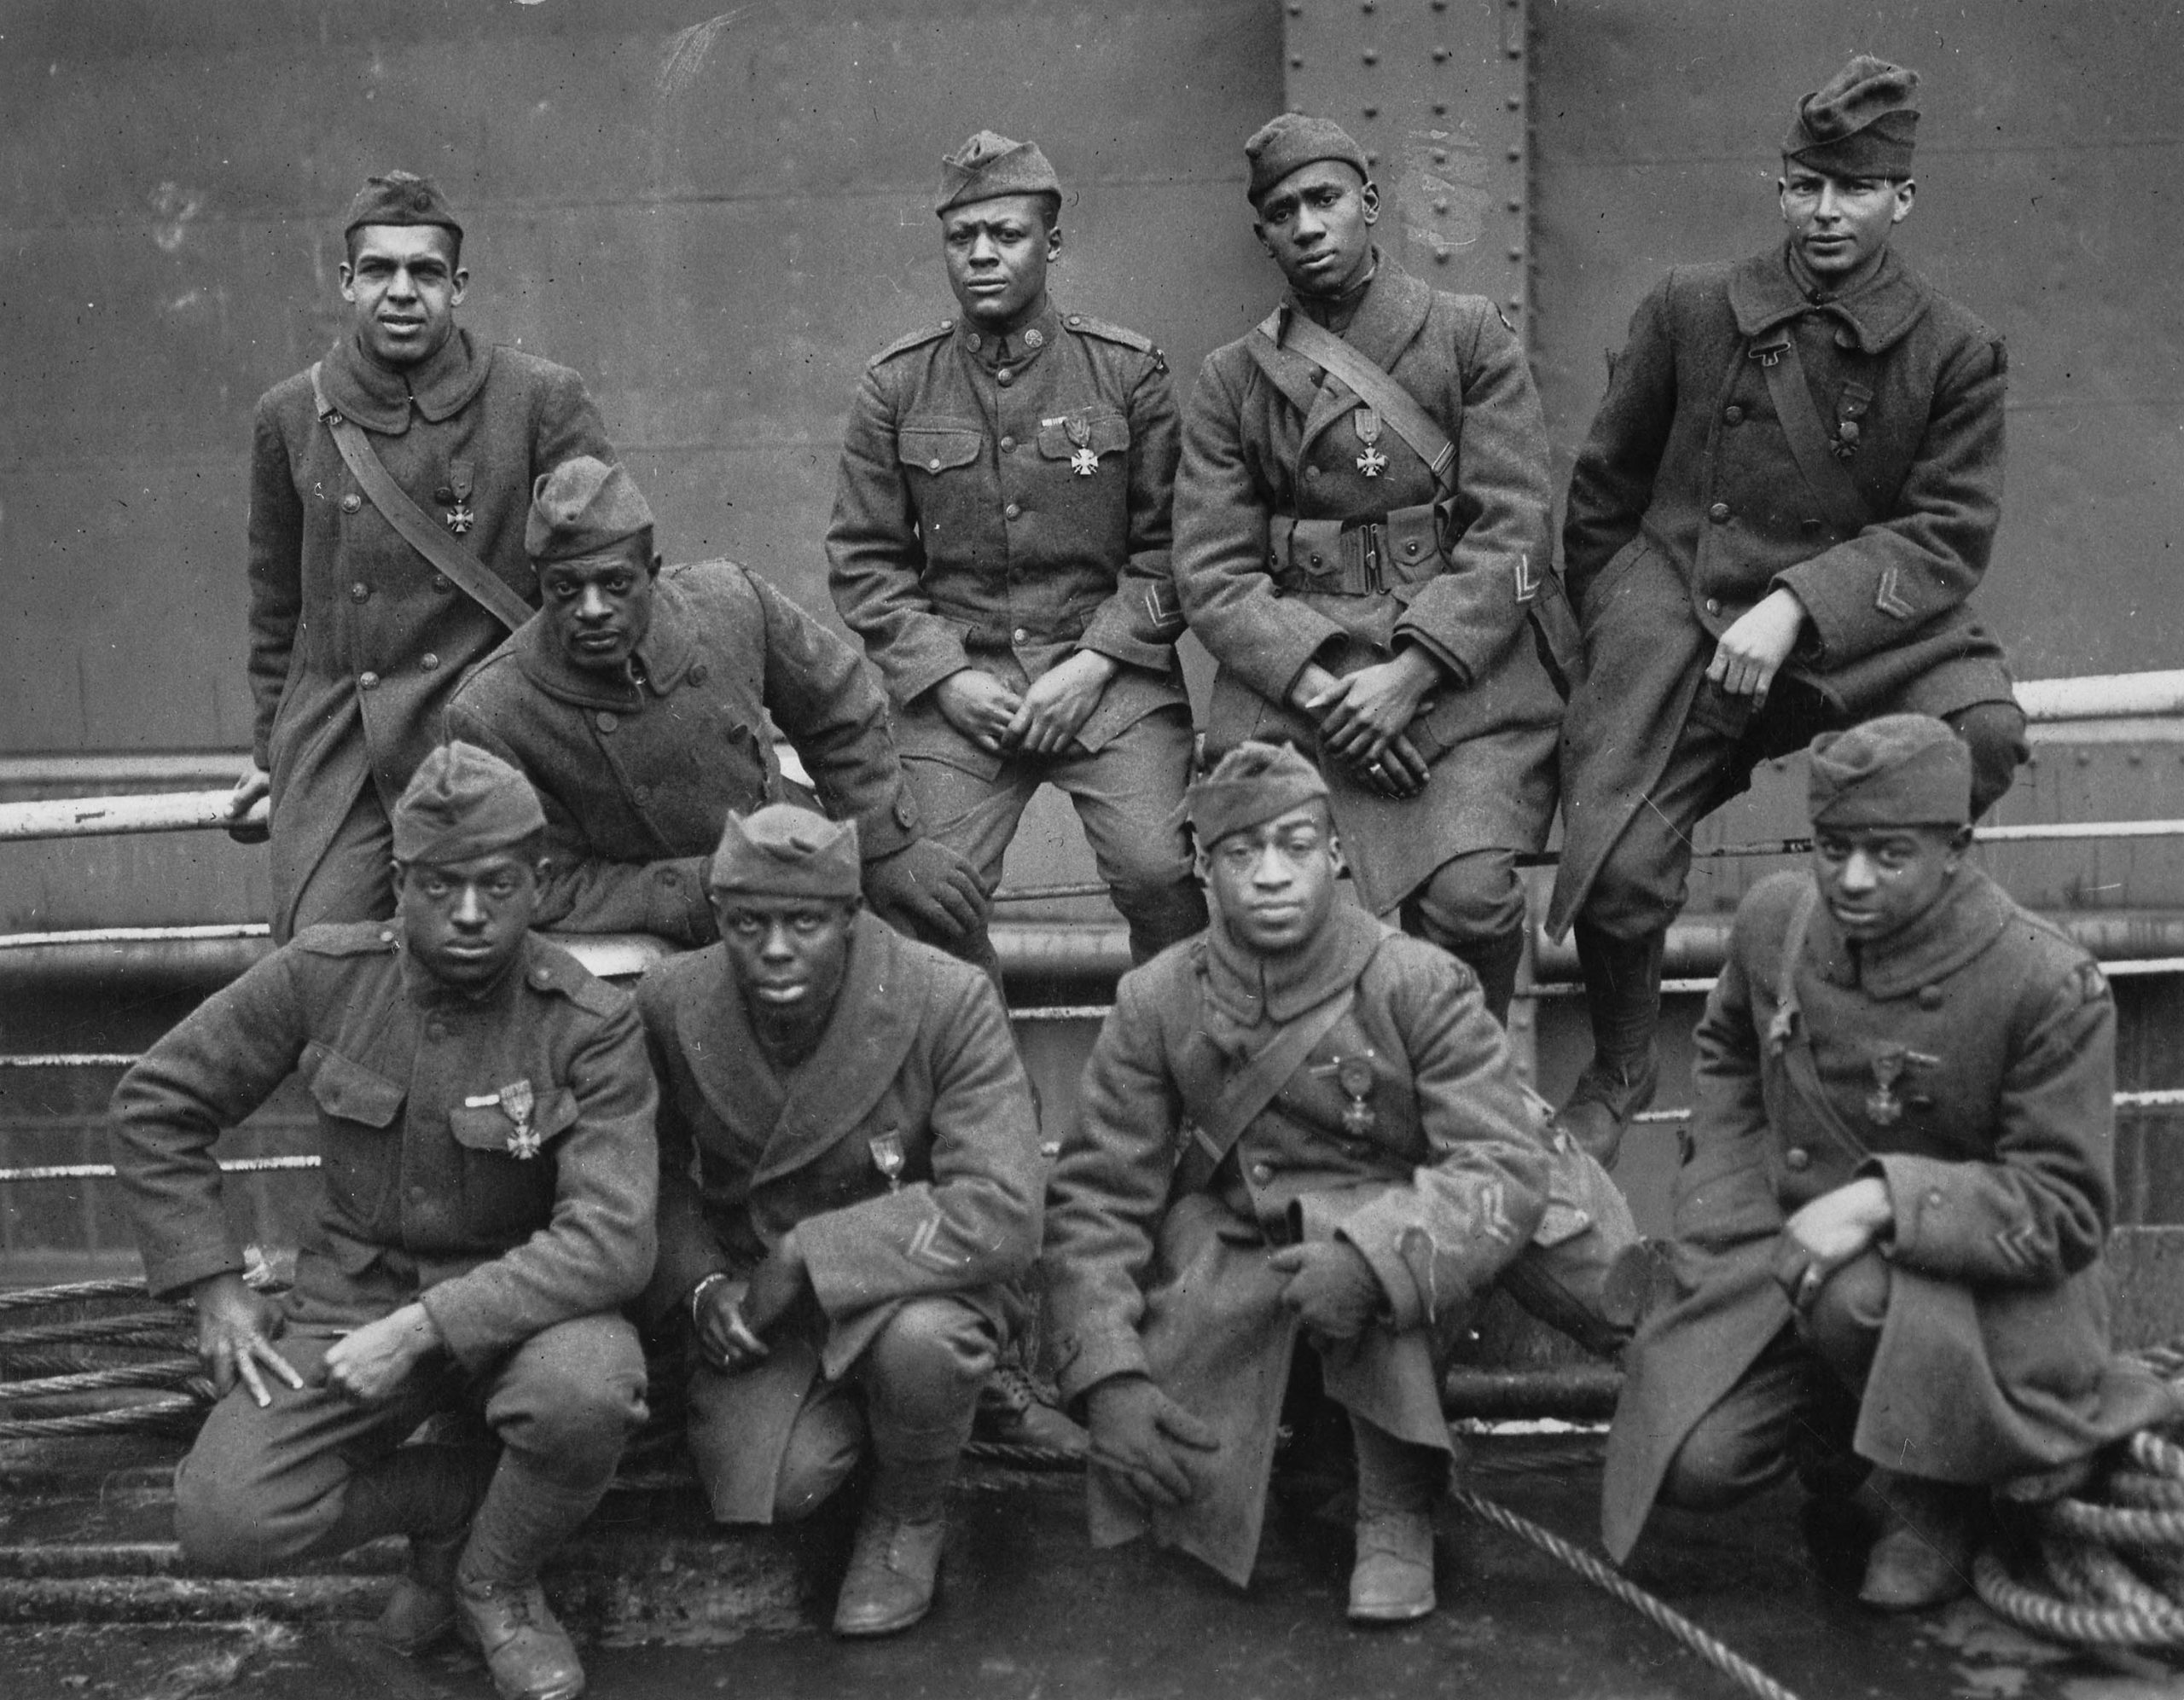 Soldiers of the 369th Infantry Regiment